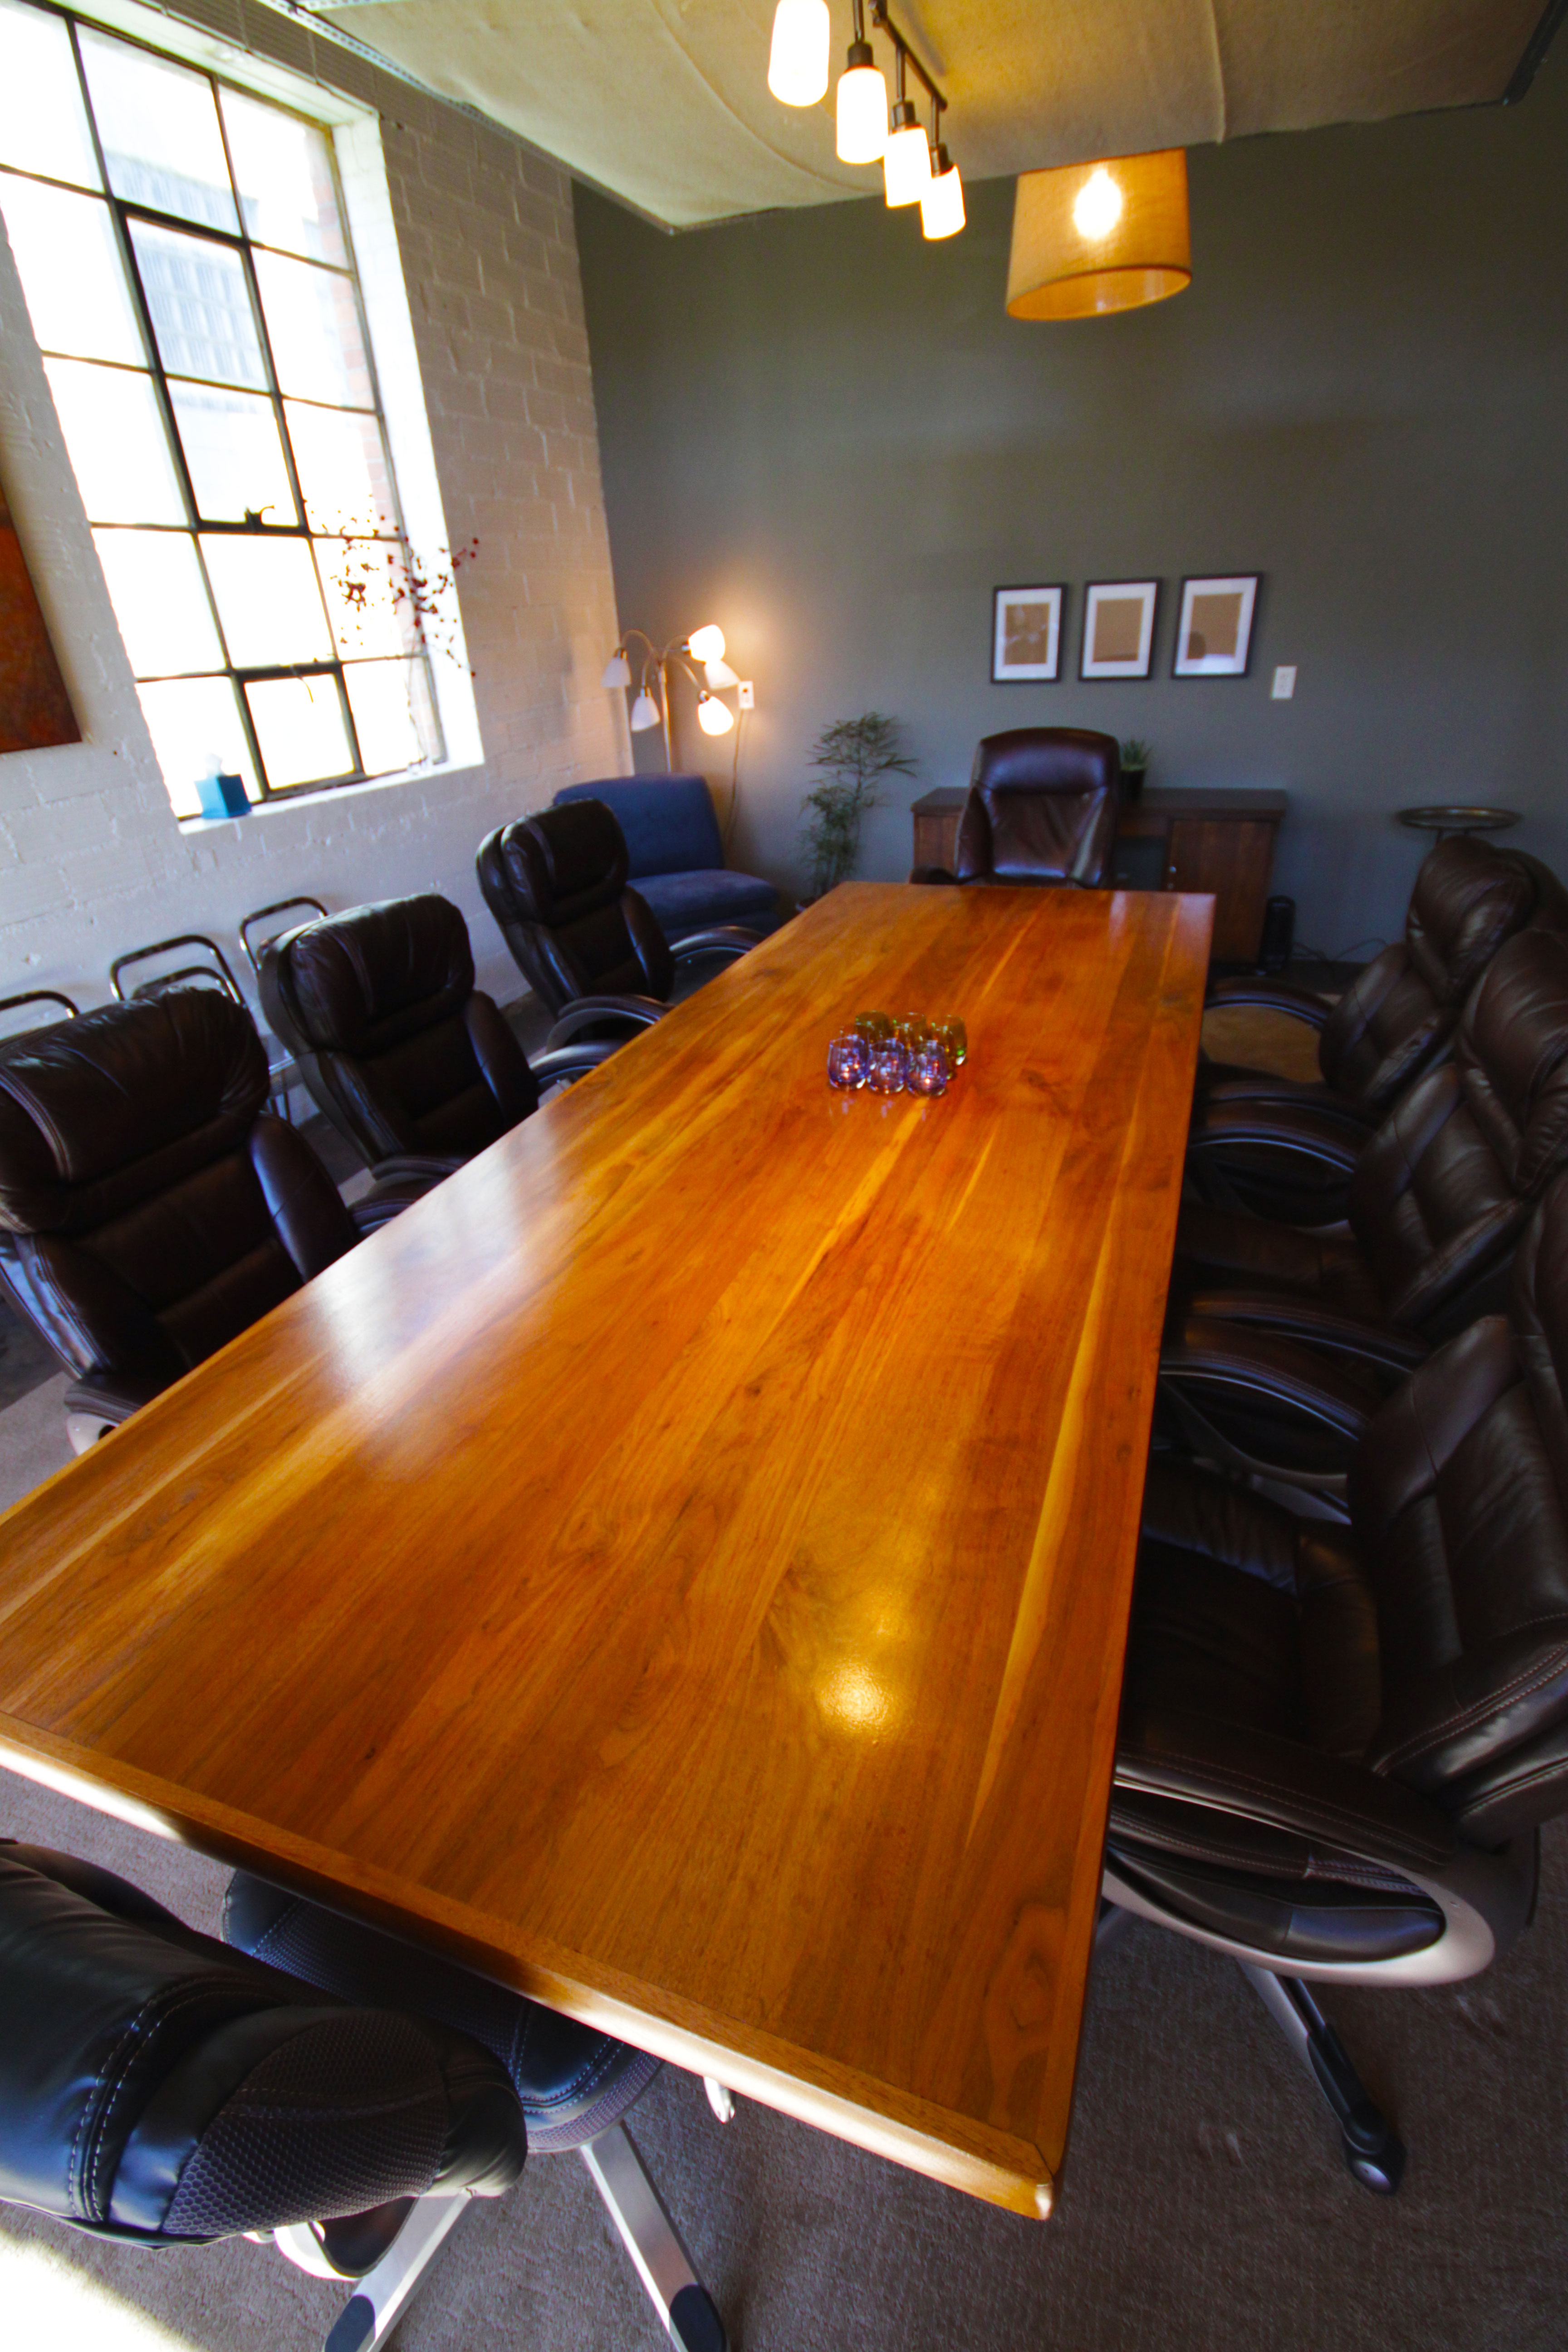 Largest Conference Room - Bozeman